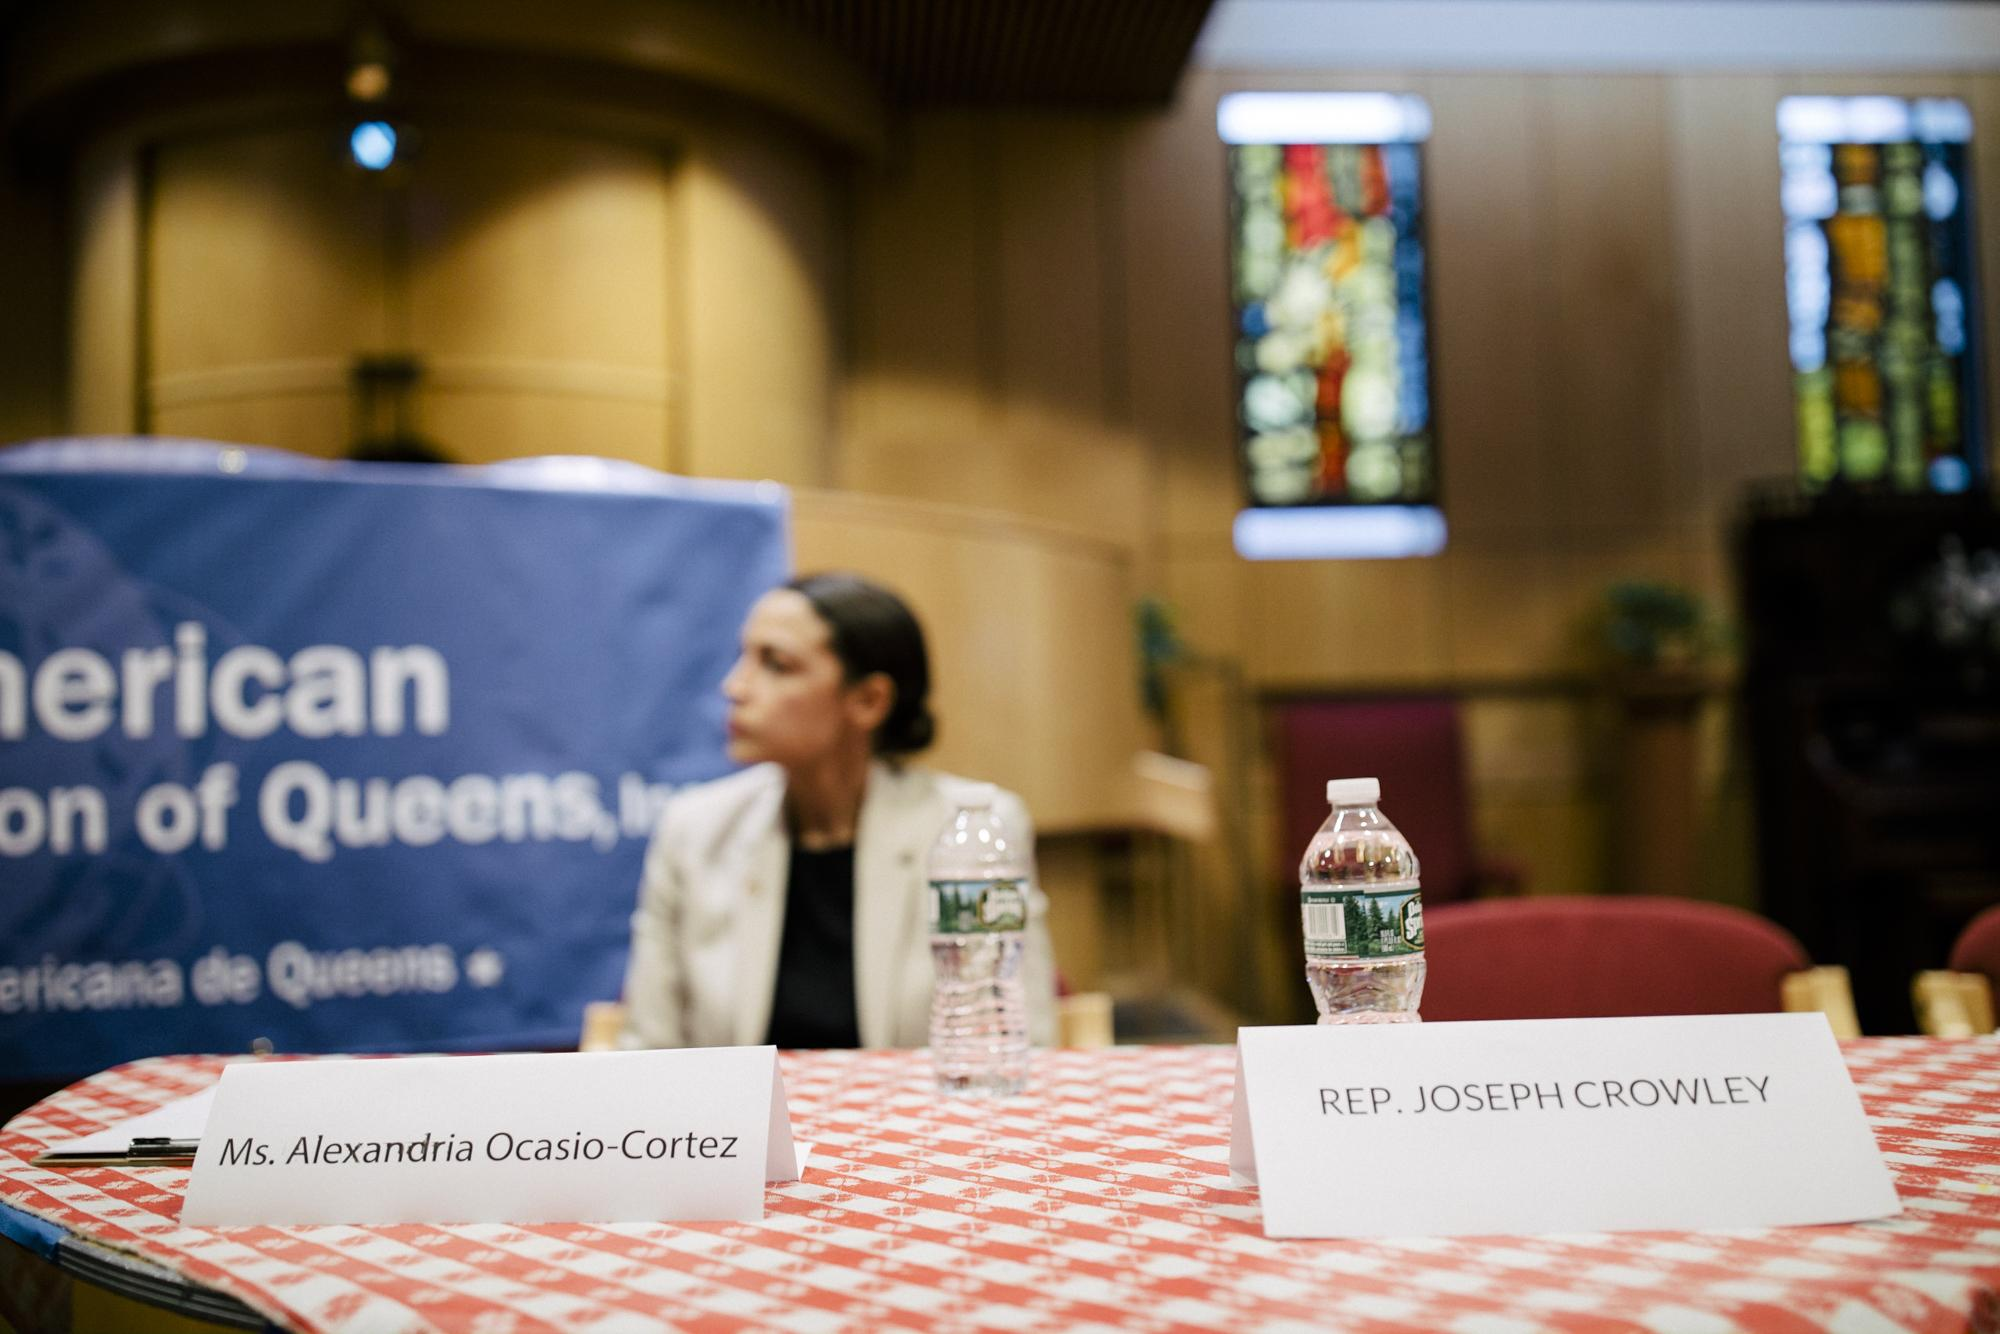 Alexandria Ocasio-Cortez patiently waits for her debate to begin against Congressman Joe Crowley as locals of the Queens neighborhood make their way into the Jewish Center of Jackson Heights, in the Queens borough of New York City, June 11, 2018.